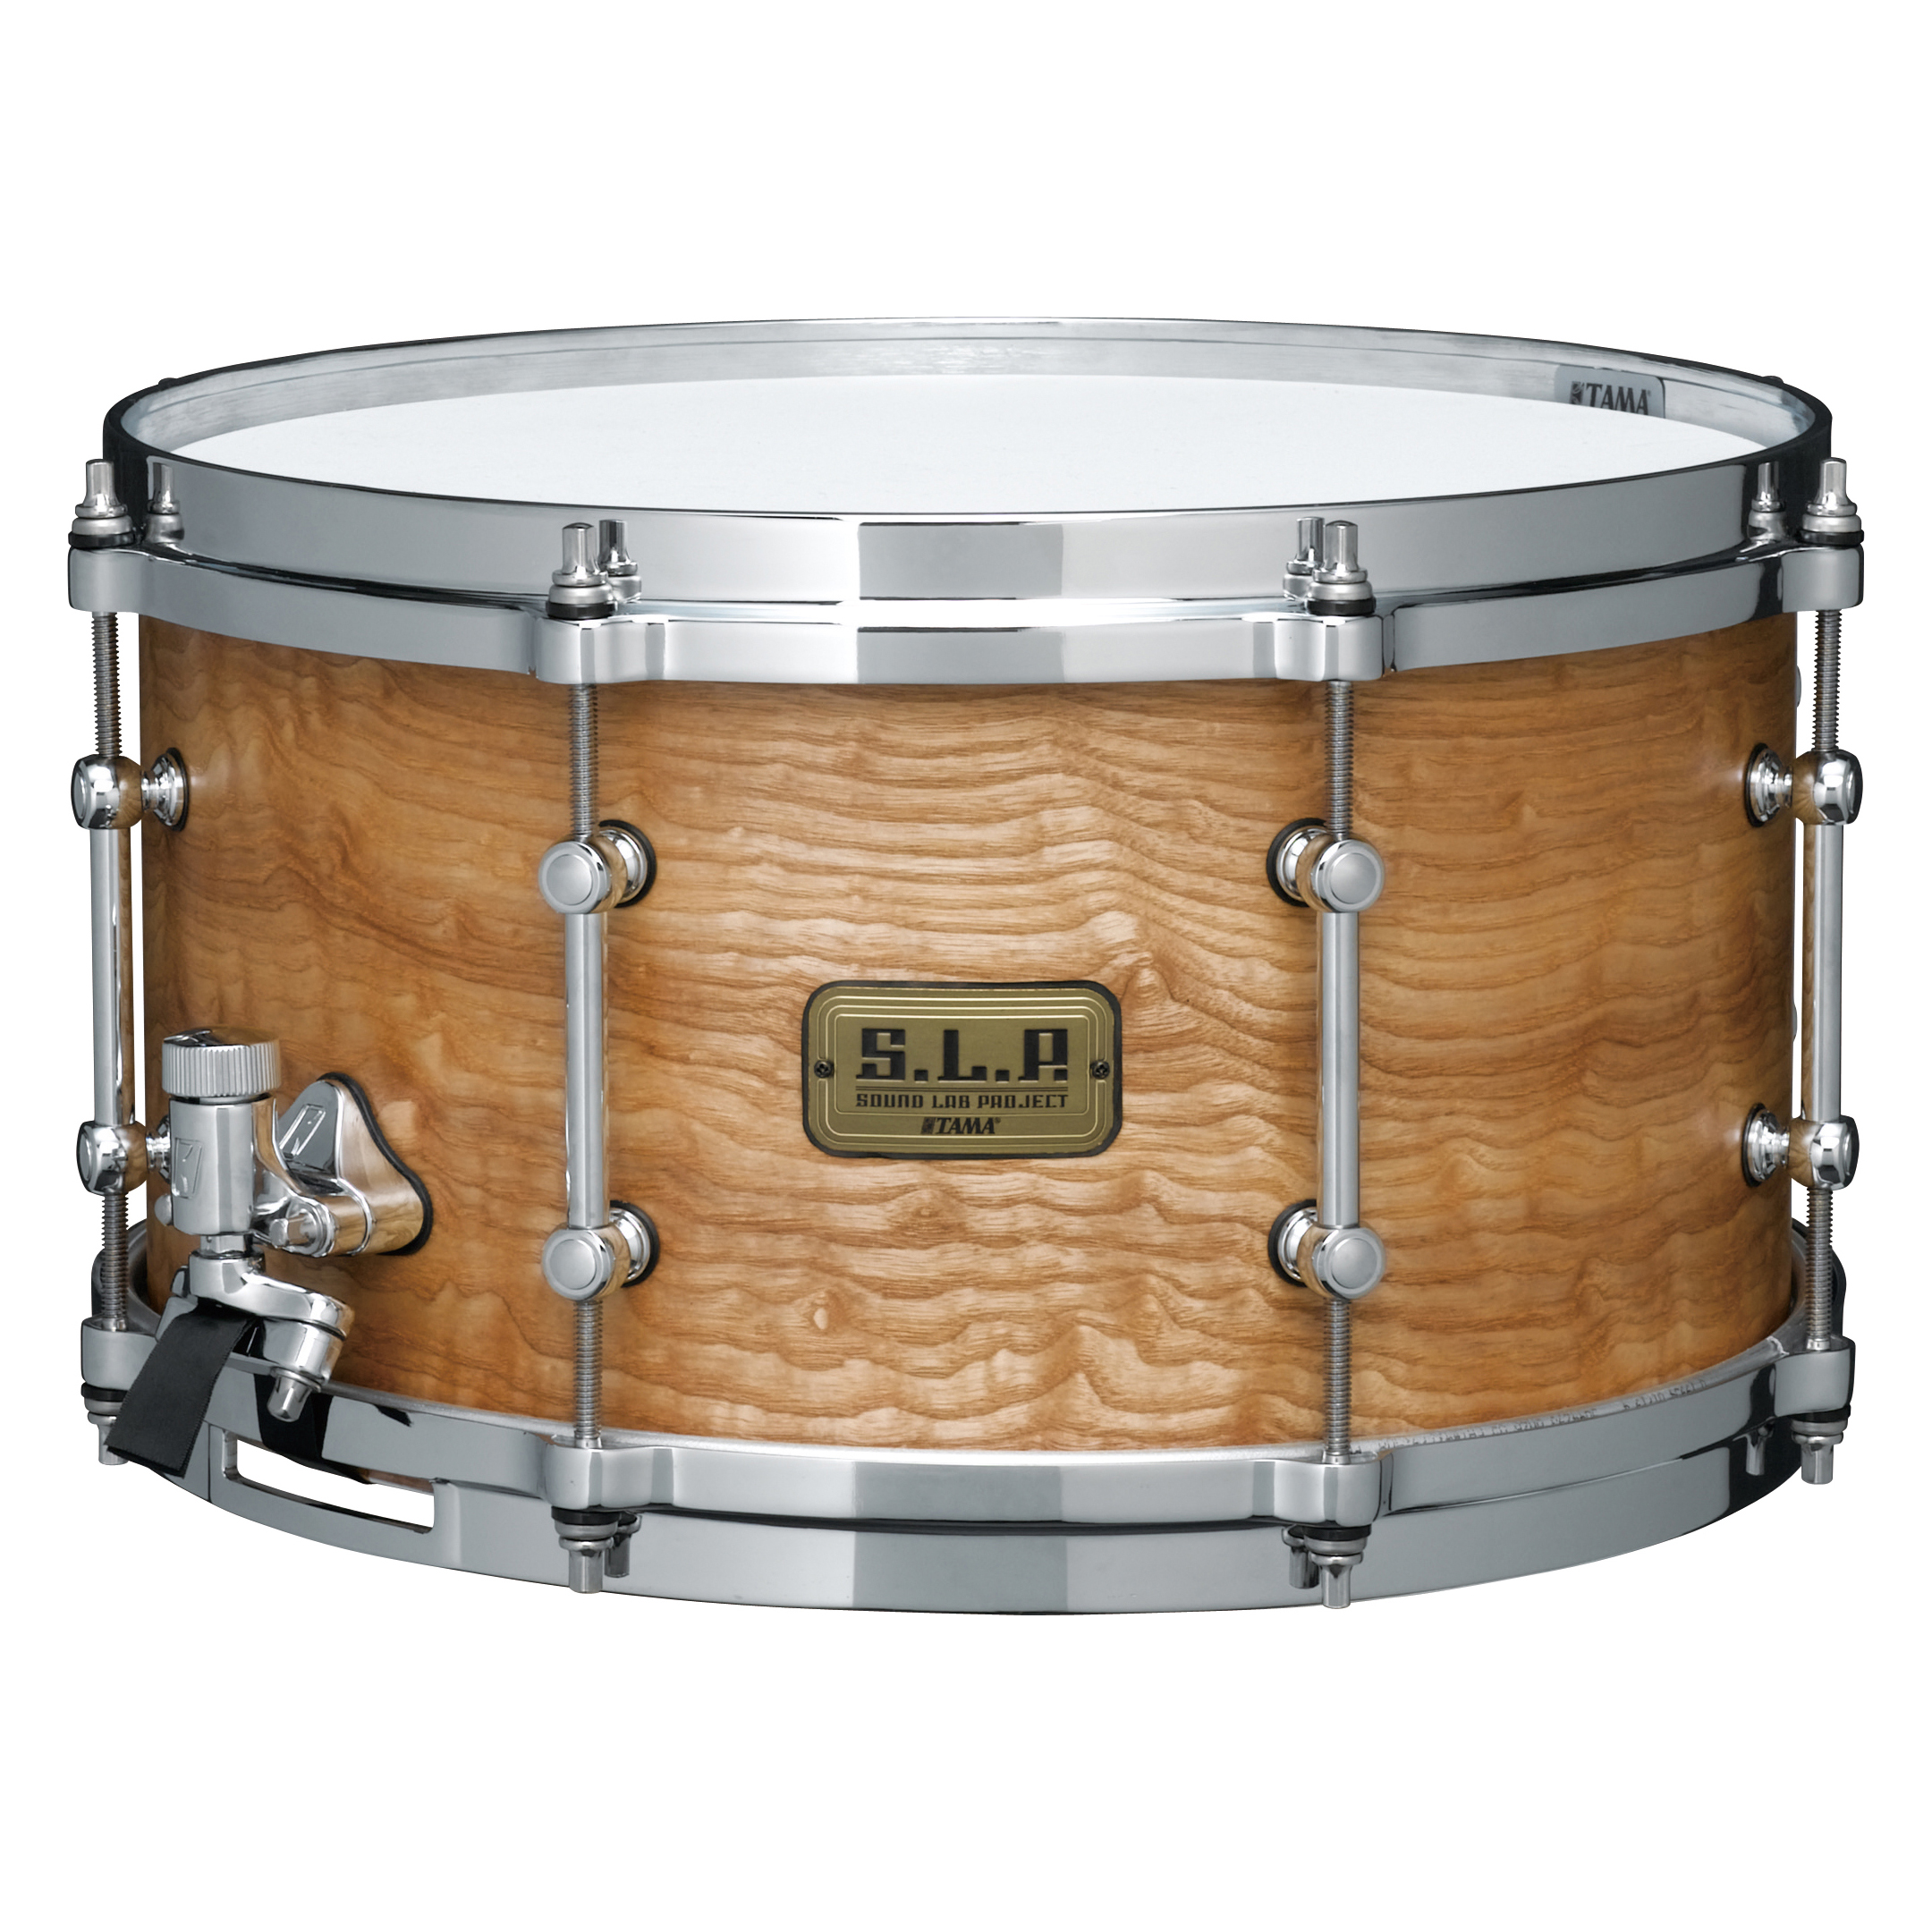 "Tama 7"" x 13"" SLP Series G-Maple Snare Drum"